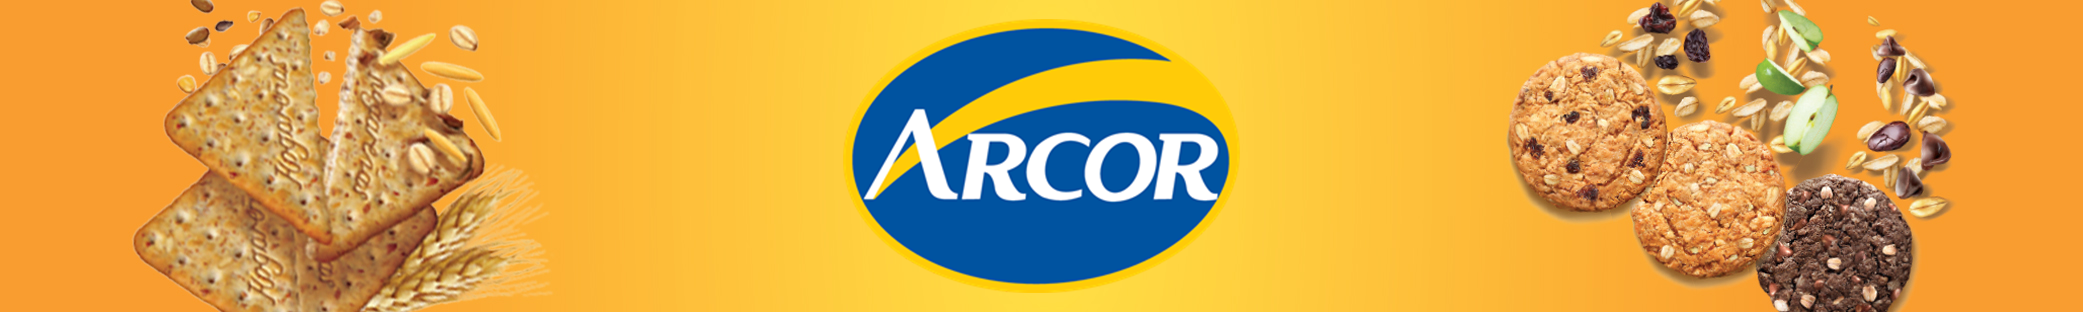 Arcor-Color